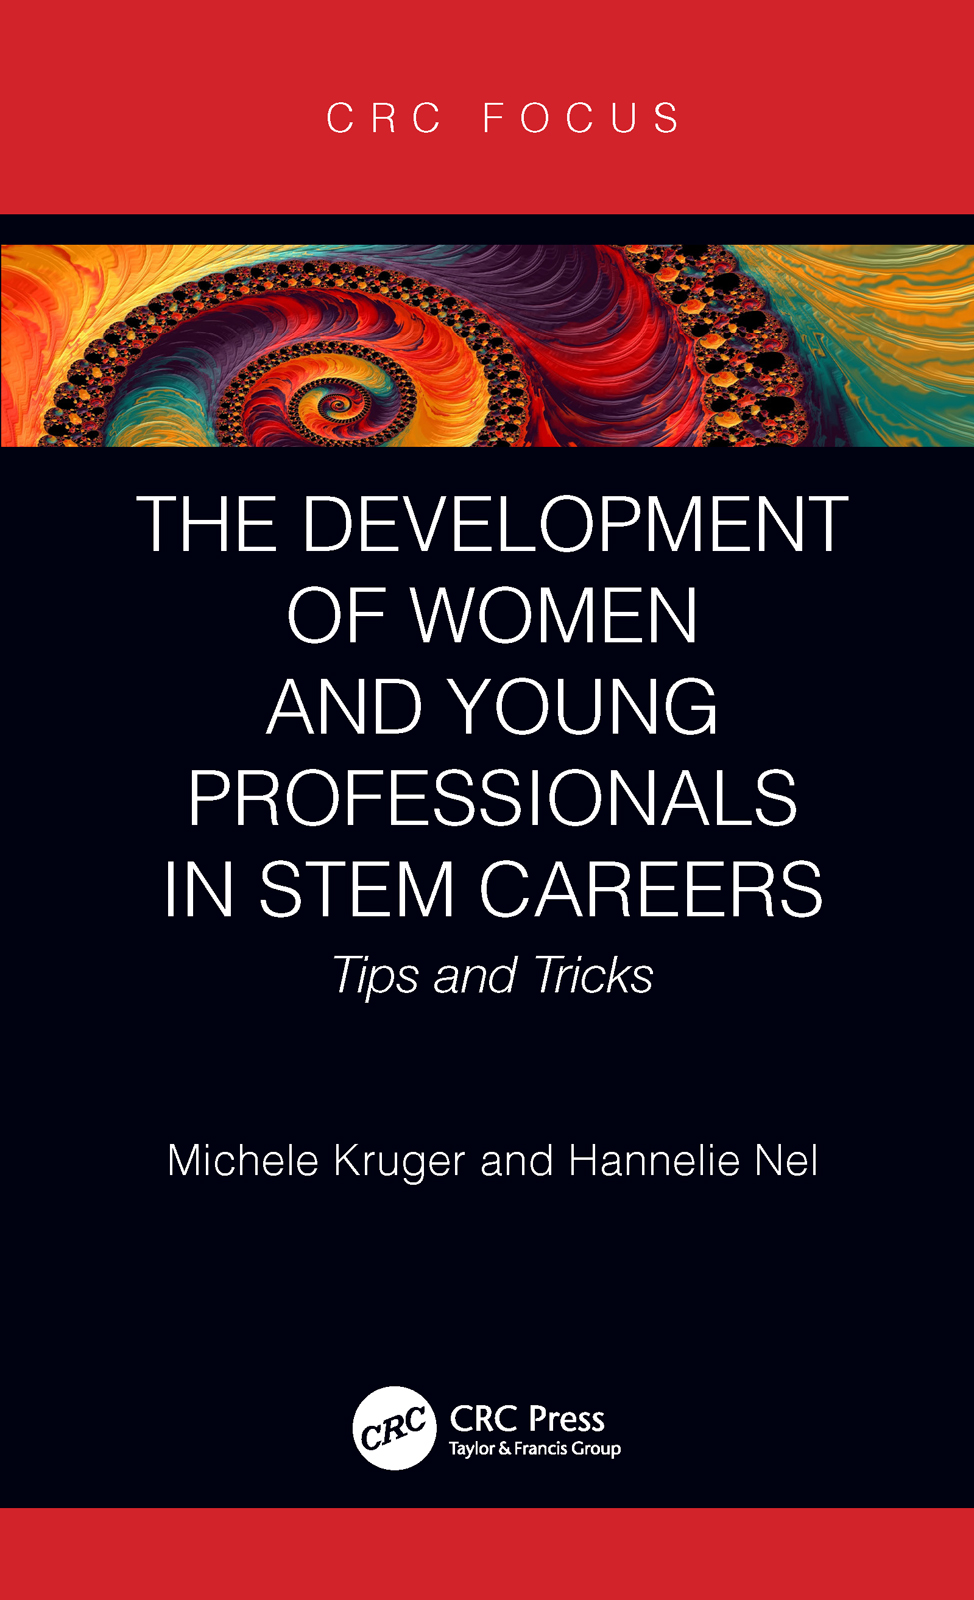 The Development of Women and Young Professionals in STEM Careers: Tips and Tricks book cover